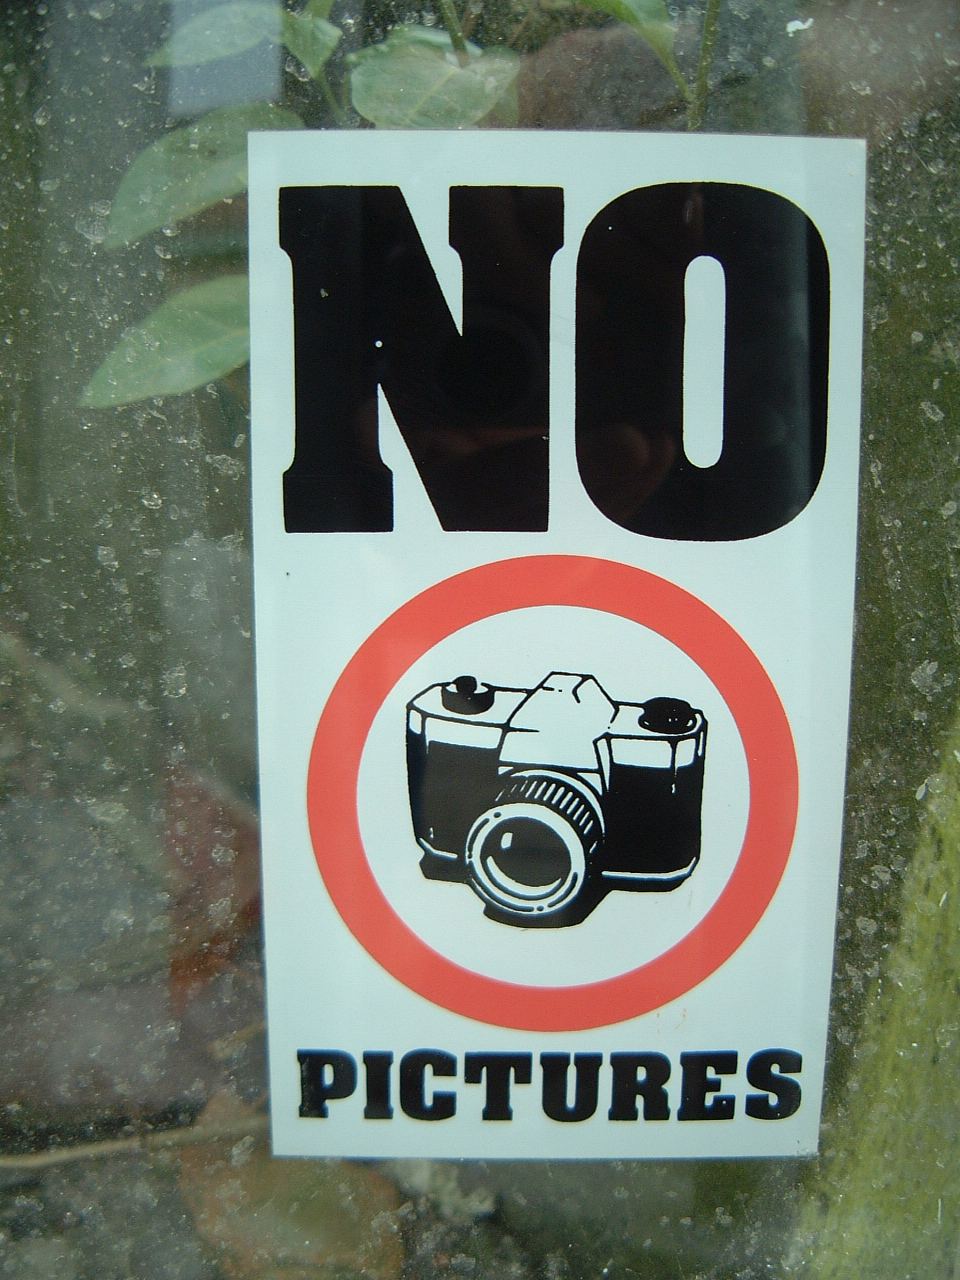 maartent objects signs no pictures camera forbidden sign